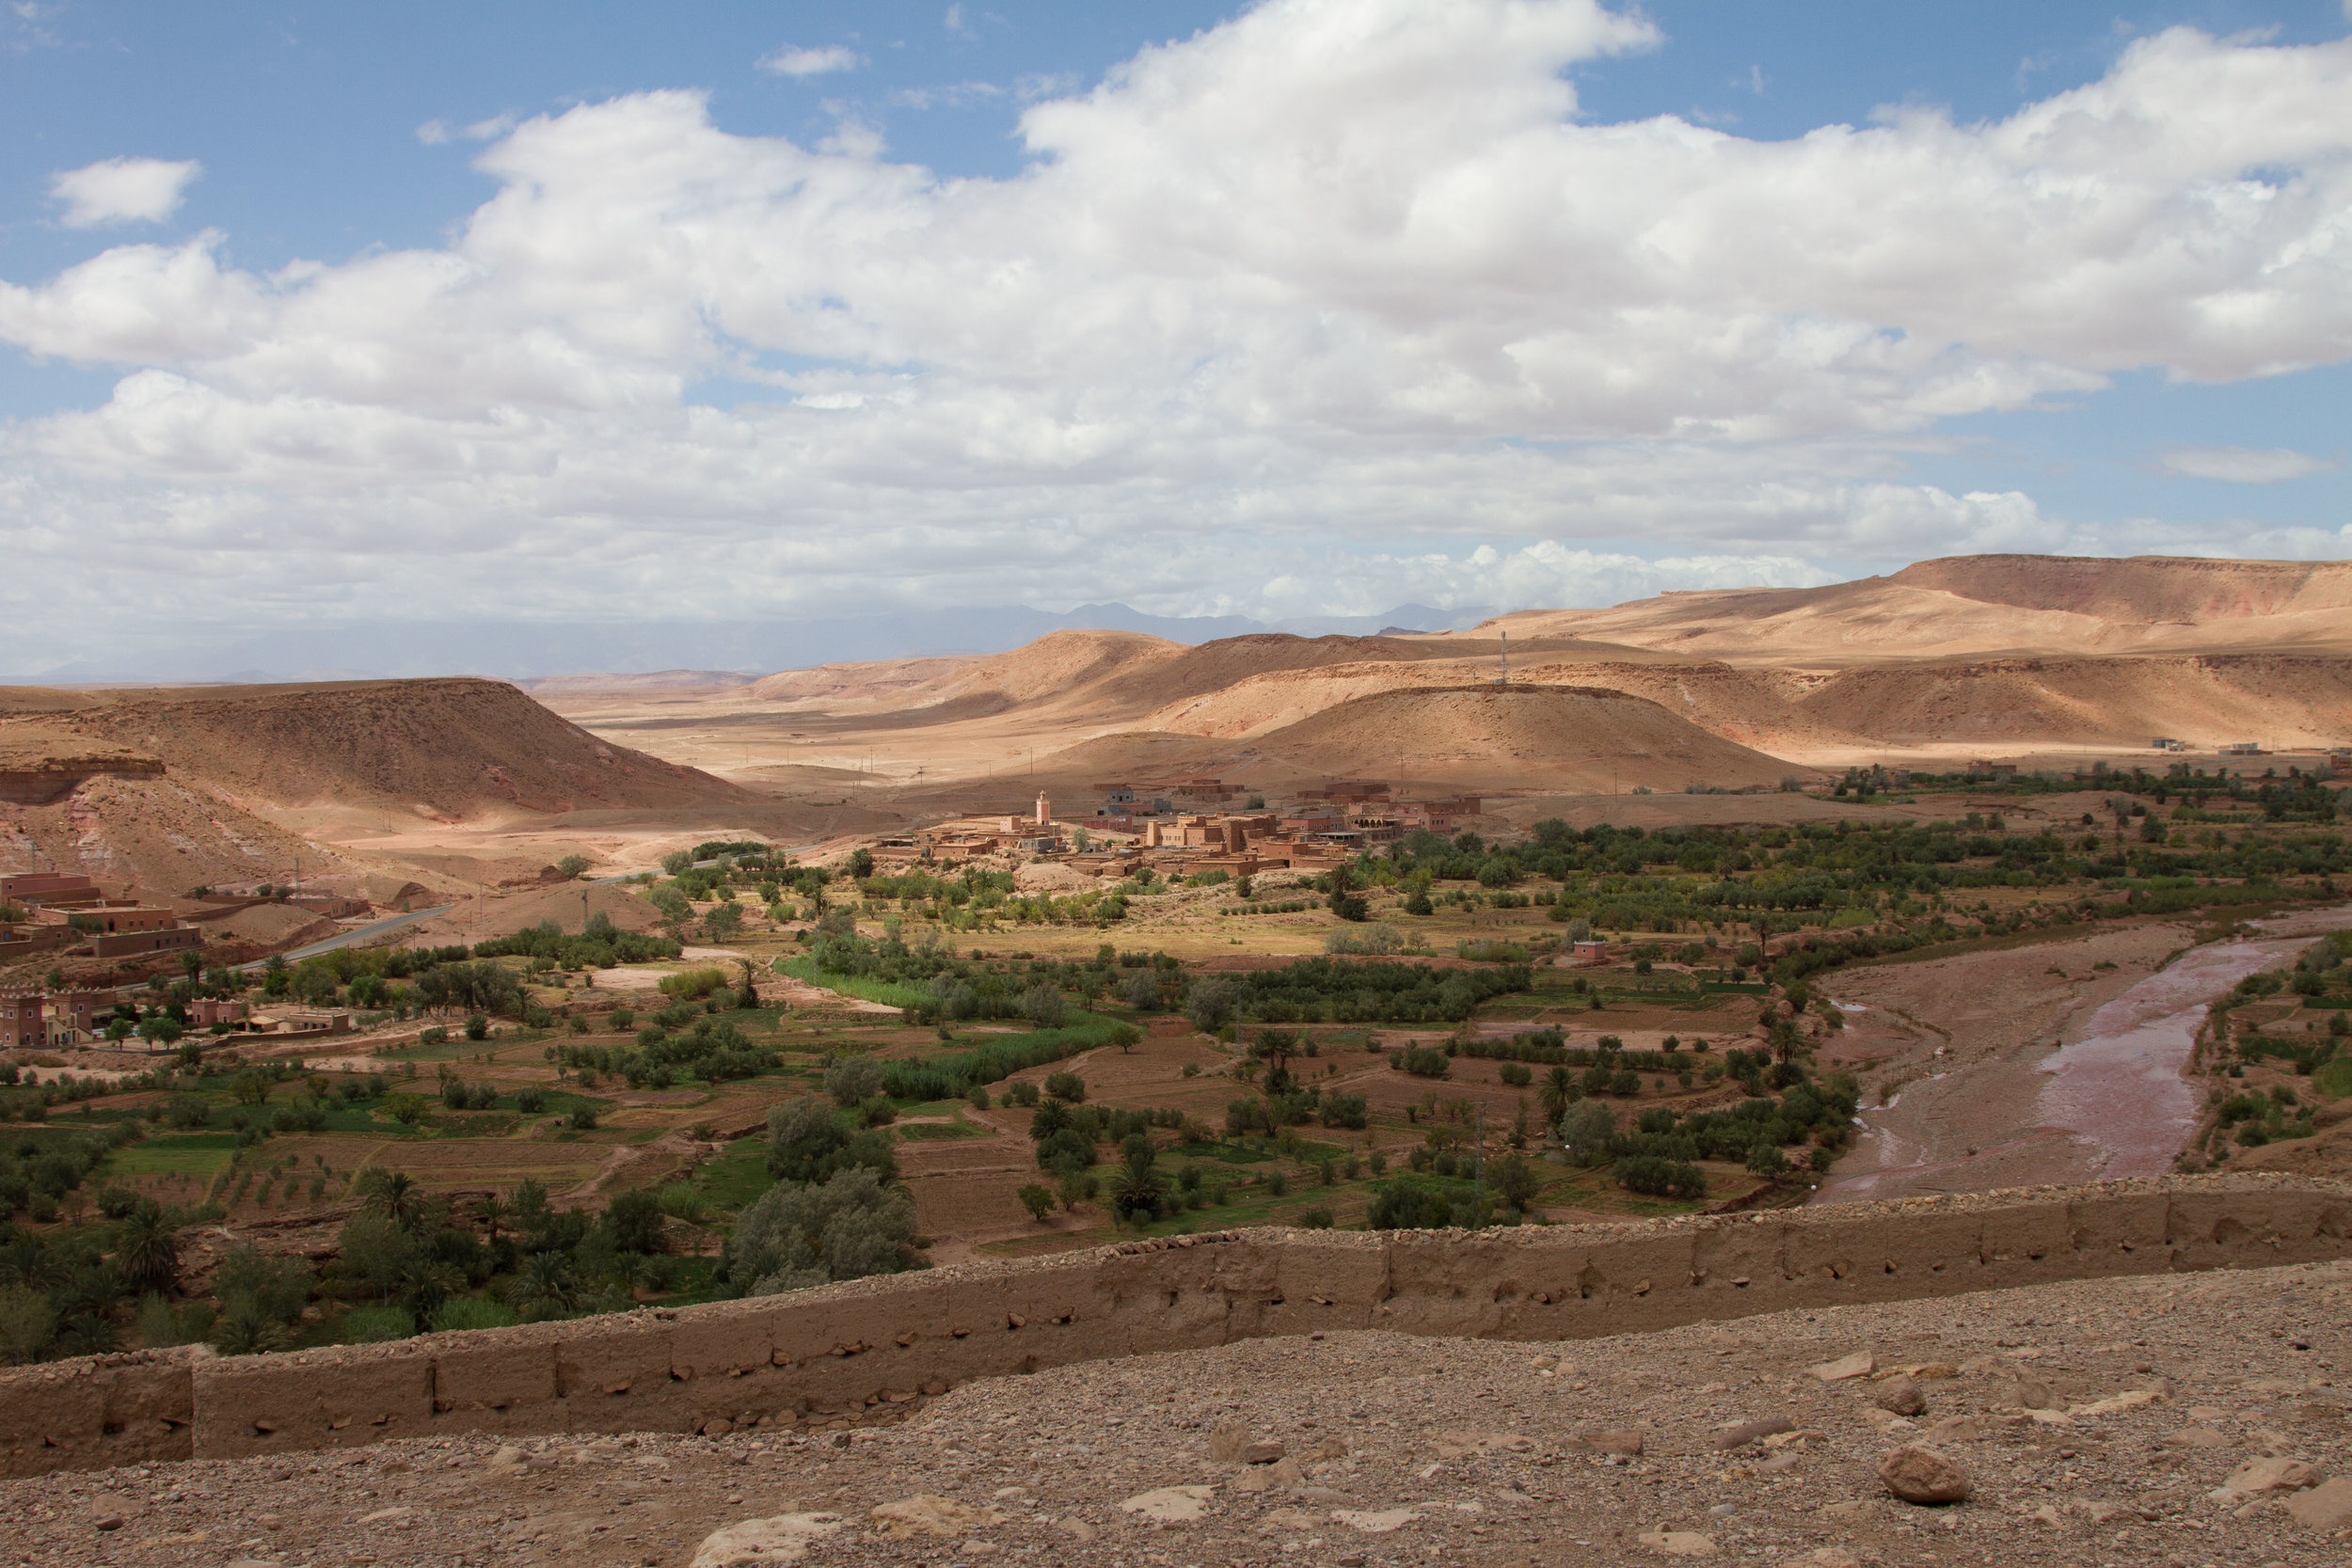 The Ait Ben Haddou, a historic ruin by the desert